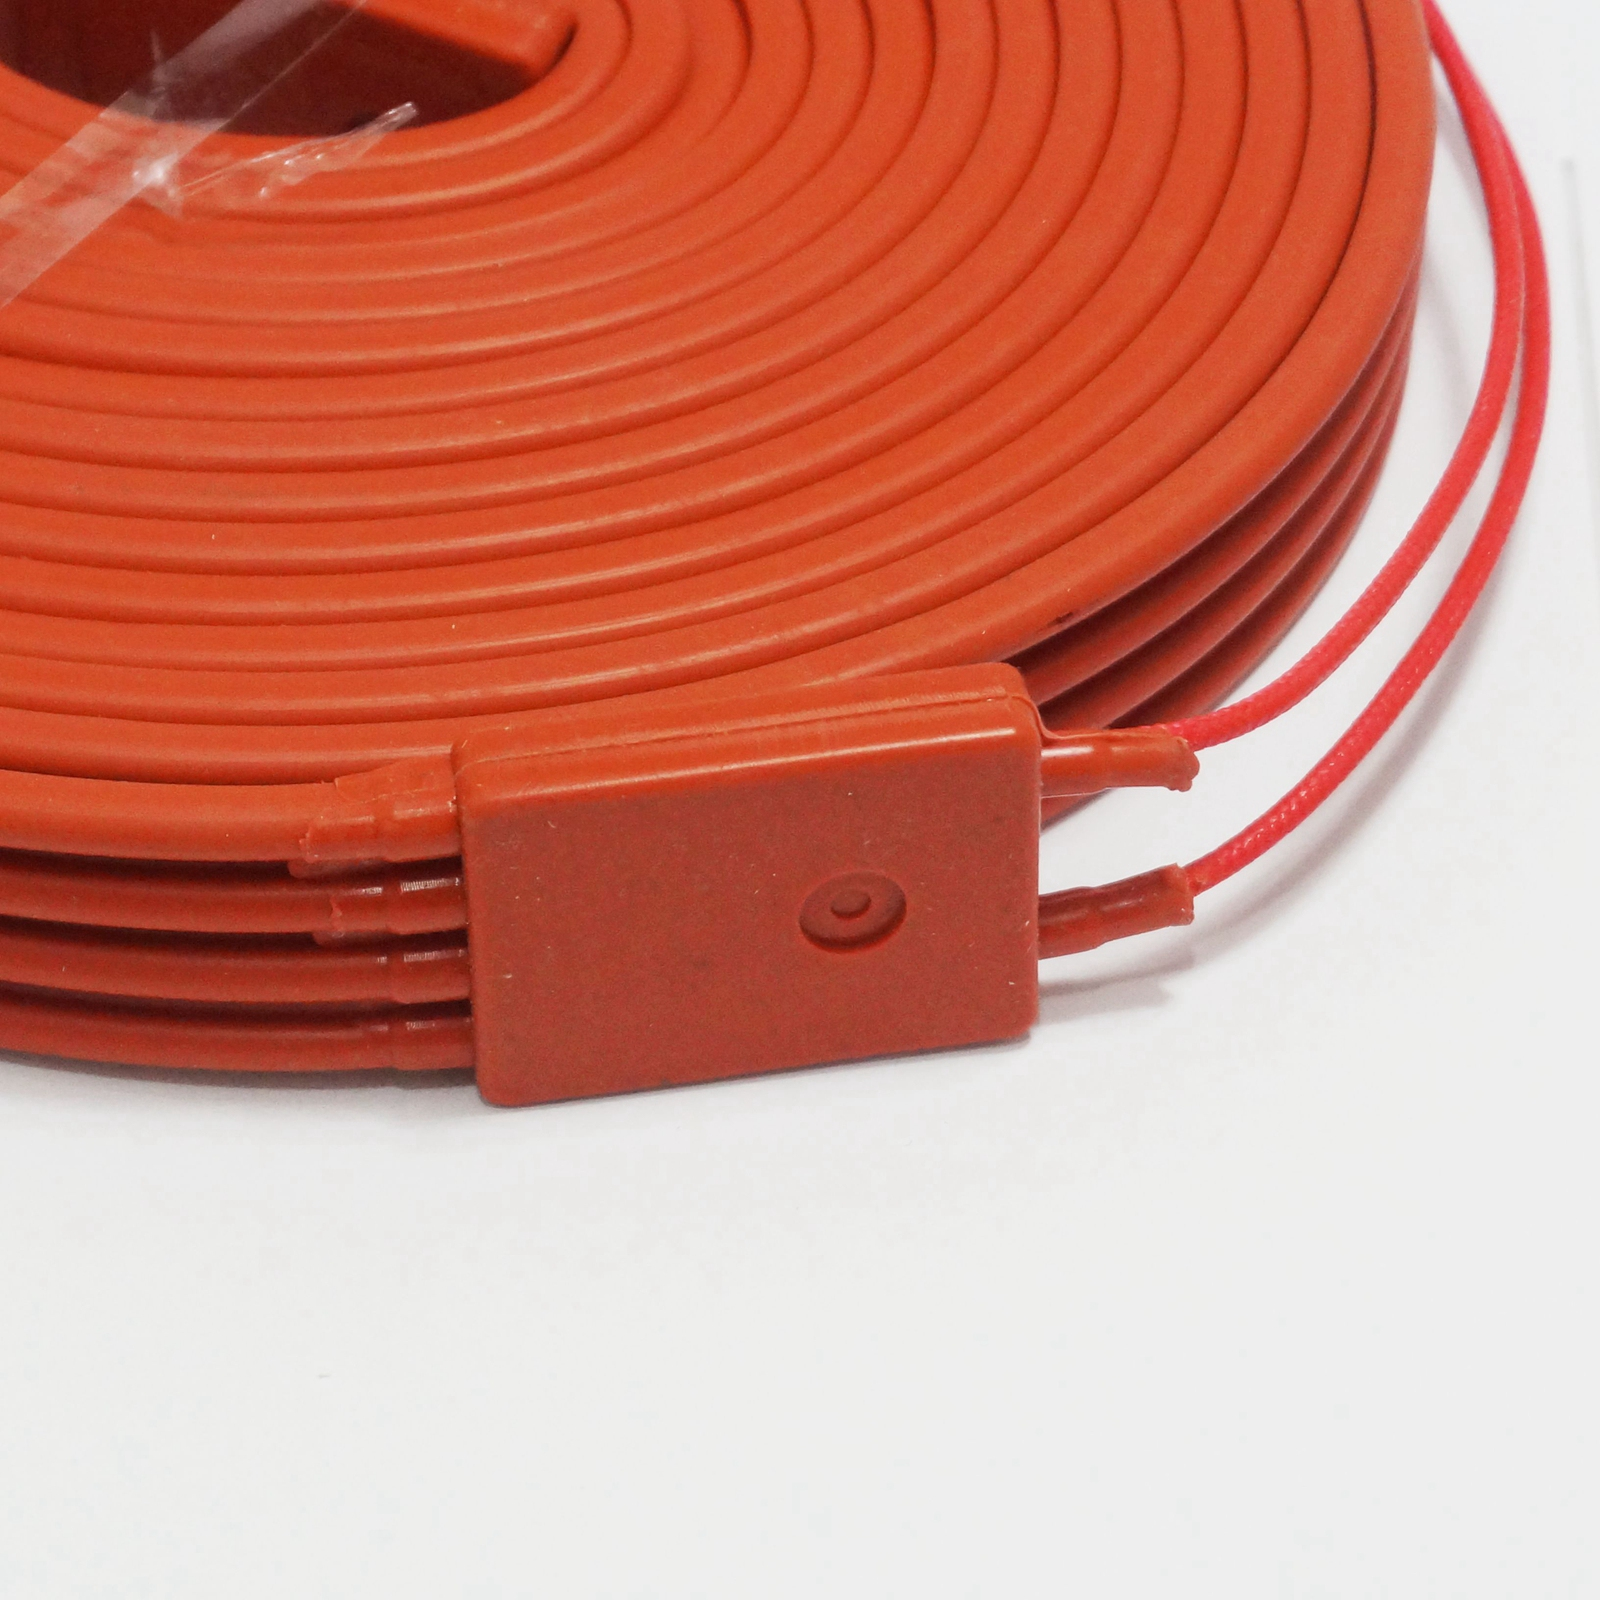 medium resolution of 220v ac 25x5000mm 500w waterproof flexible silicone rubber heater heating belt unfreezer for pipeline electrical wires in wires cables from lights